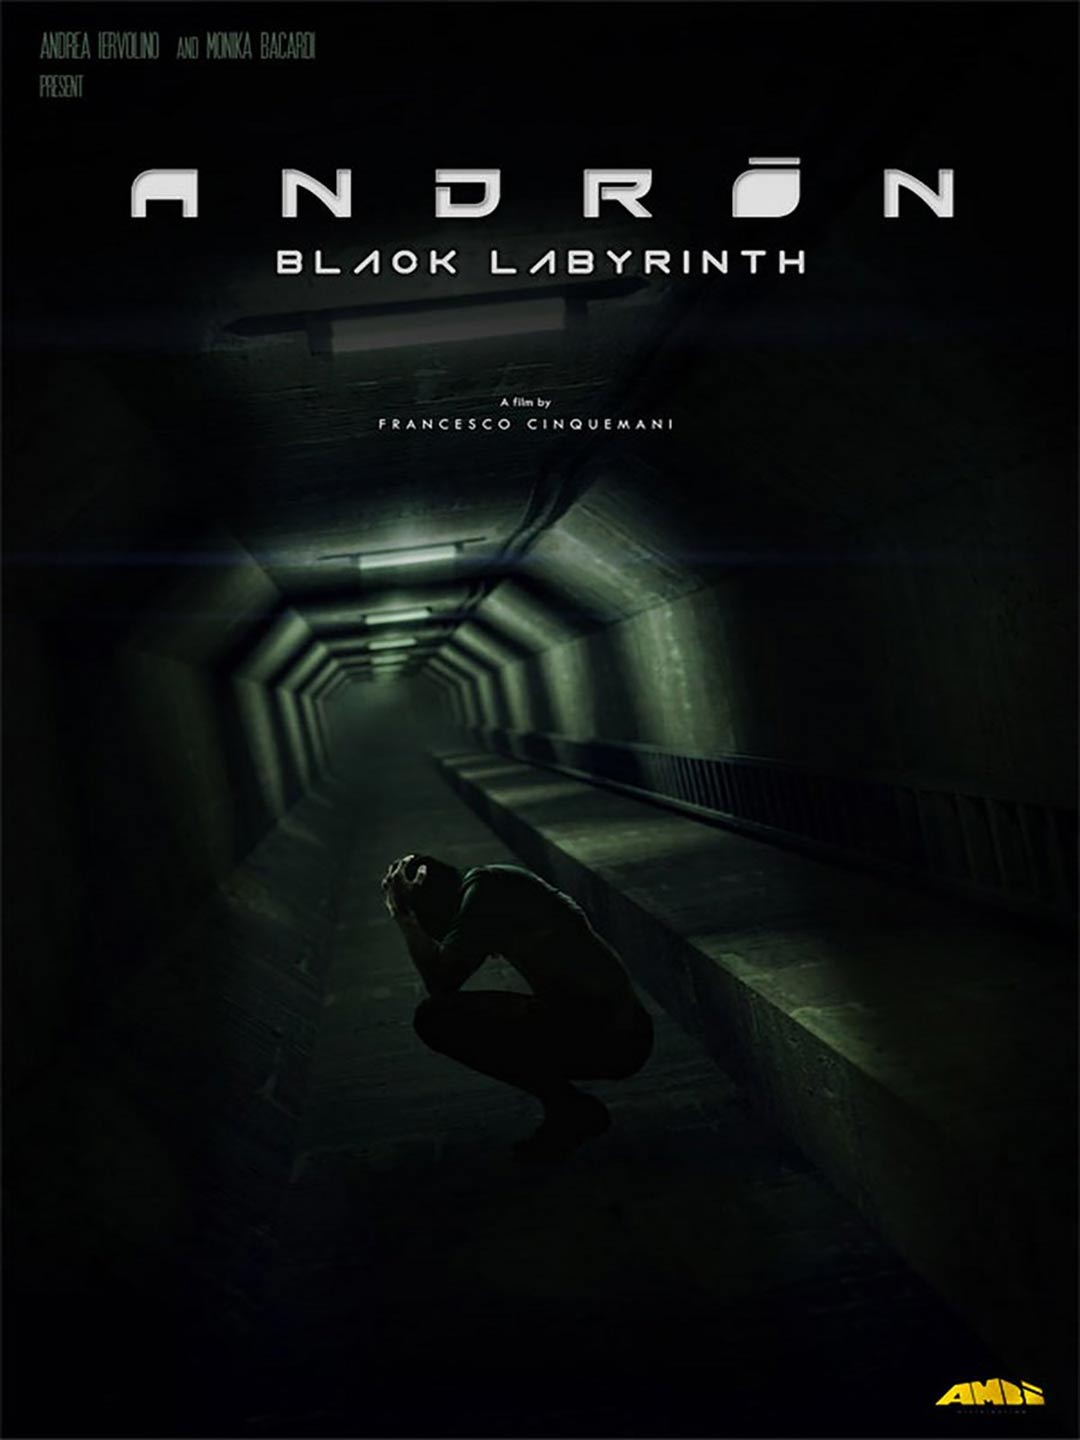 Andròn - The Black Labyrinth Poster #1